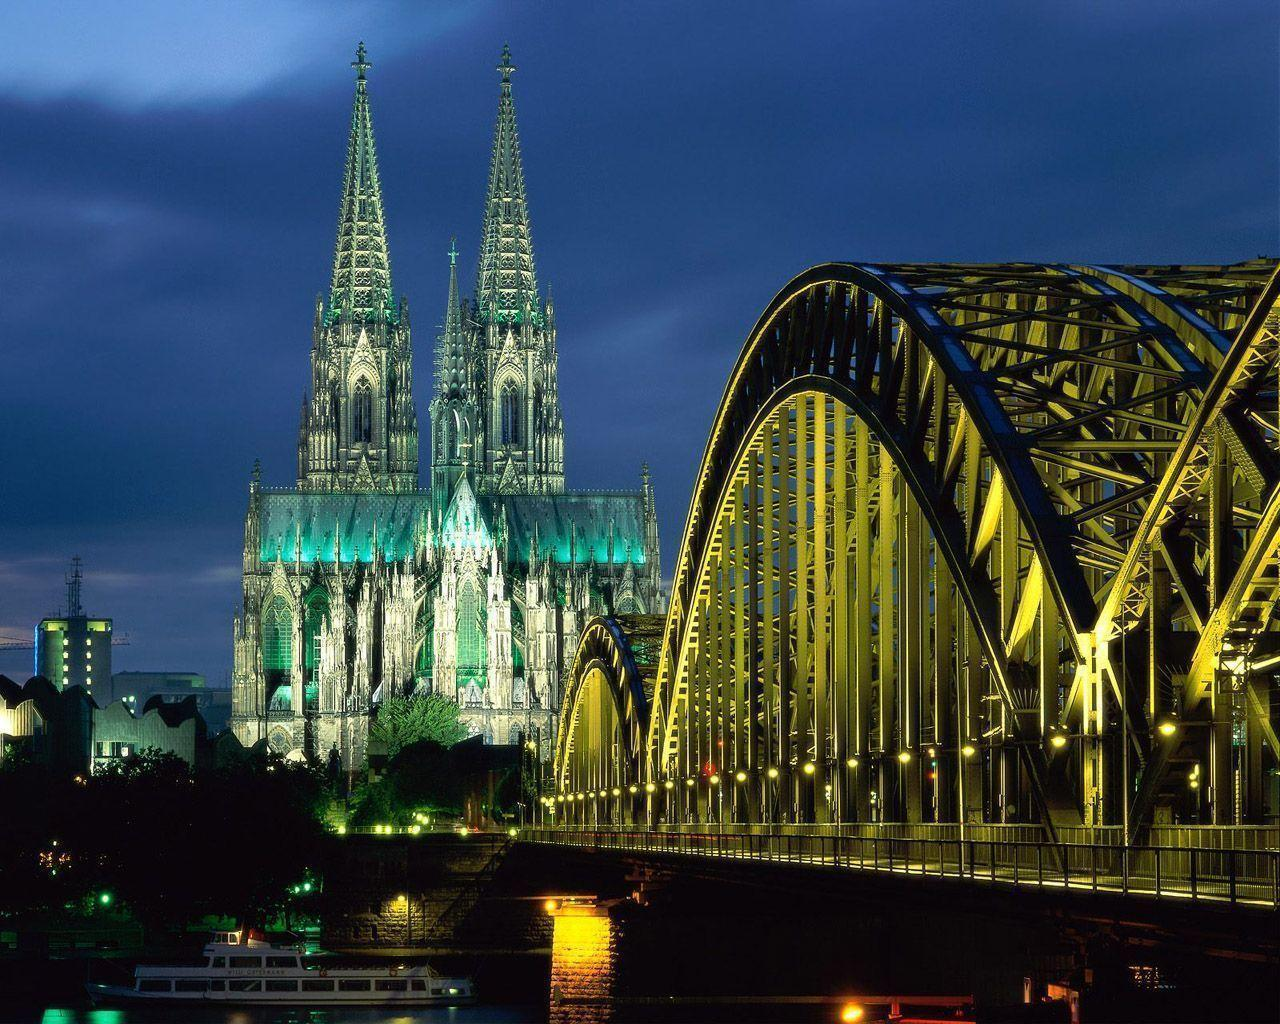 Free Bridge To Gothic Church Wallpapers, Free Bridge To Gothic